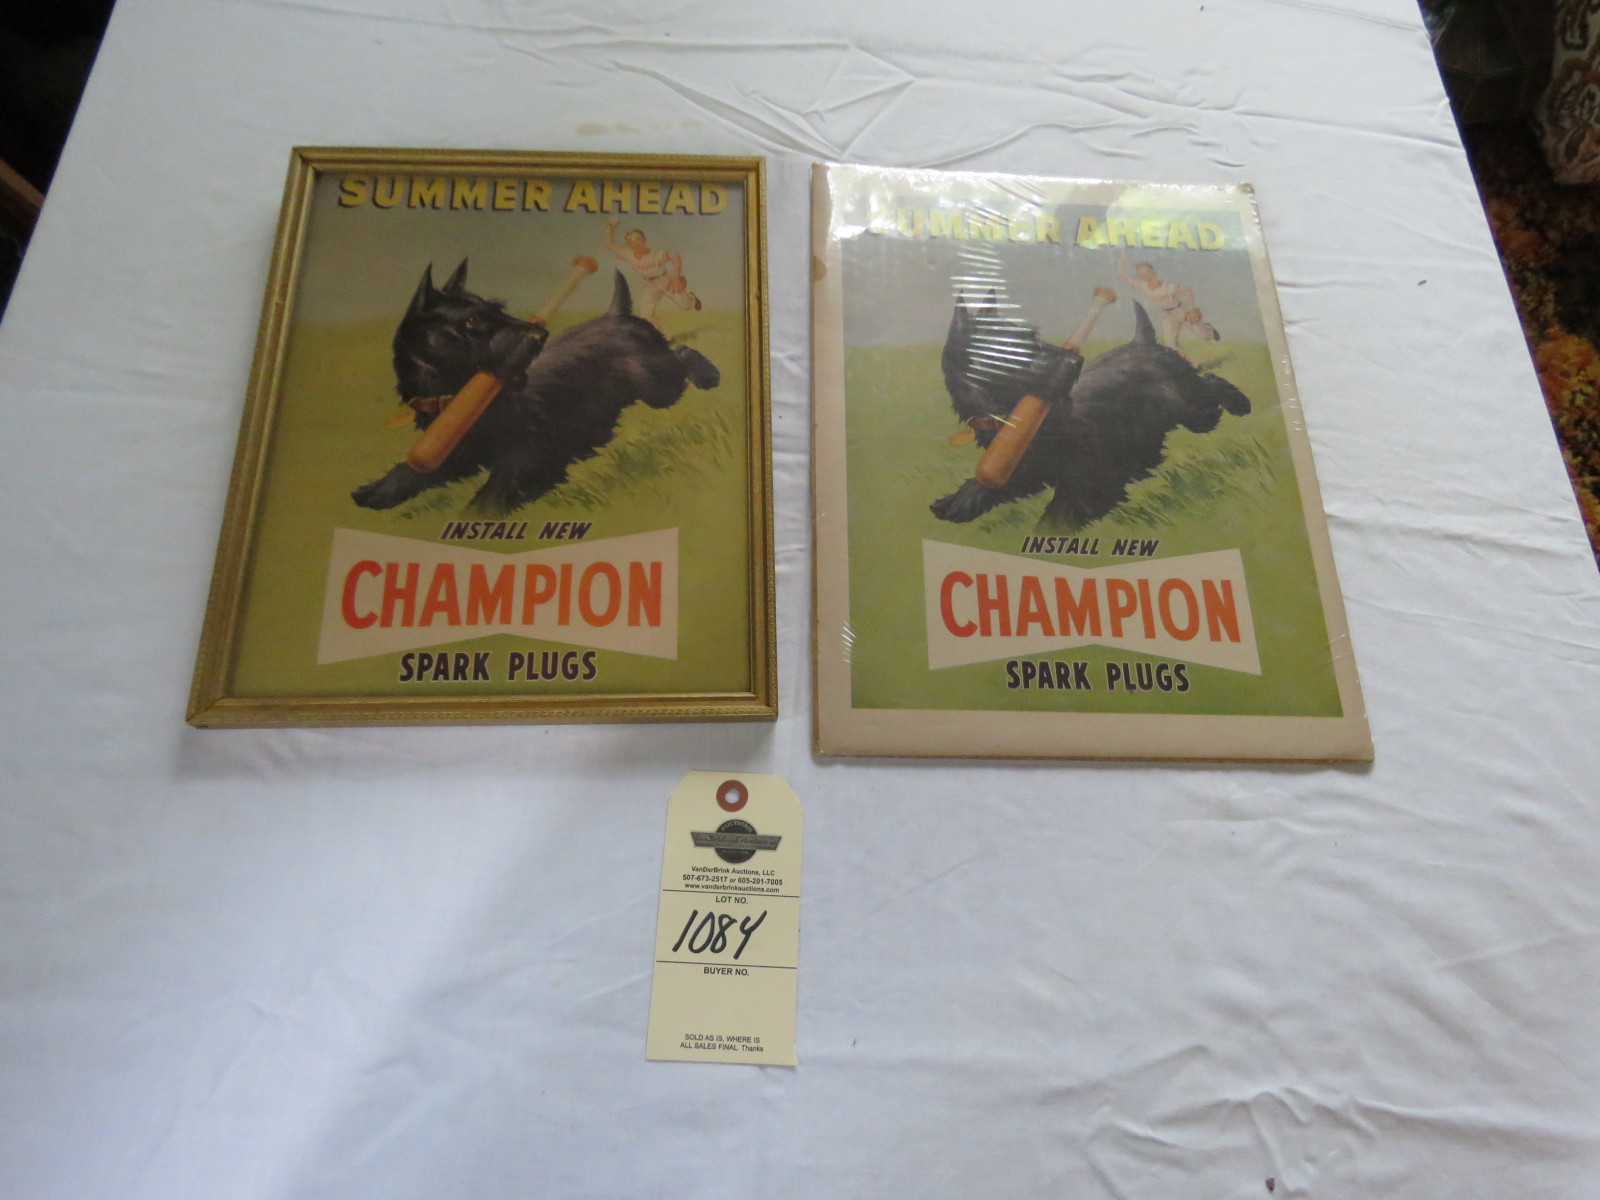 Vintage Champion Spark Plugs Advertising Grouping - Image 2